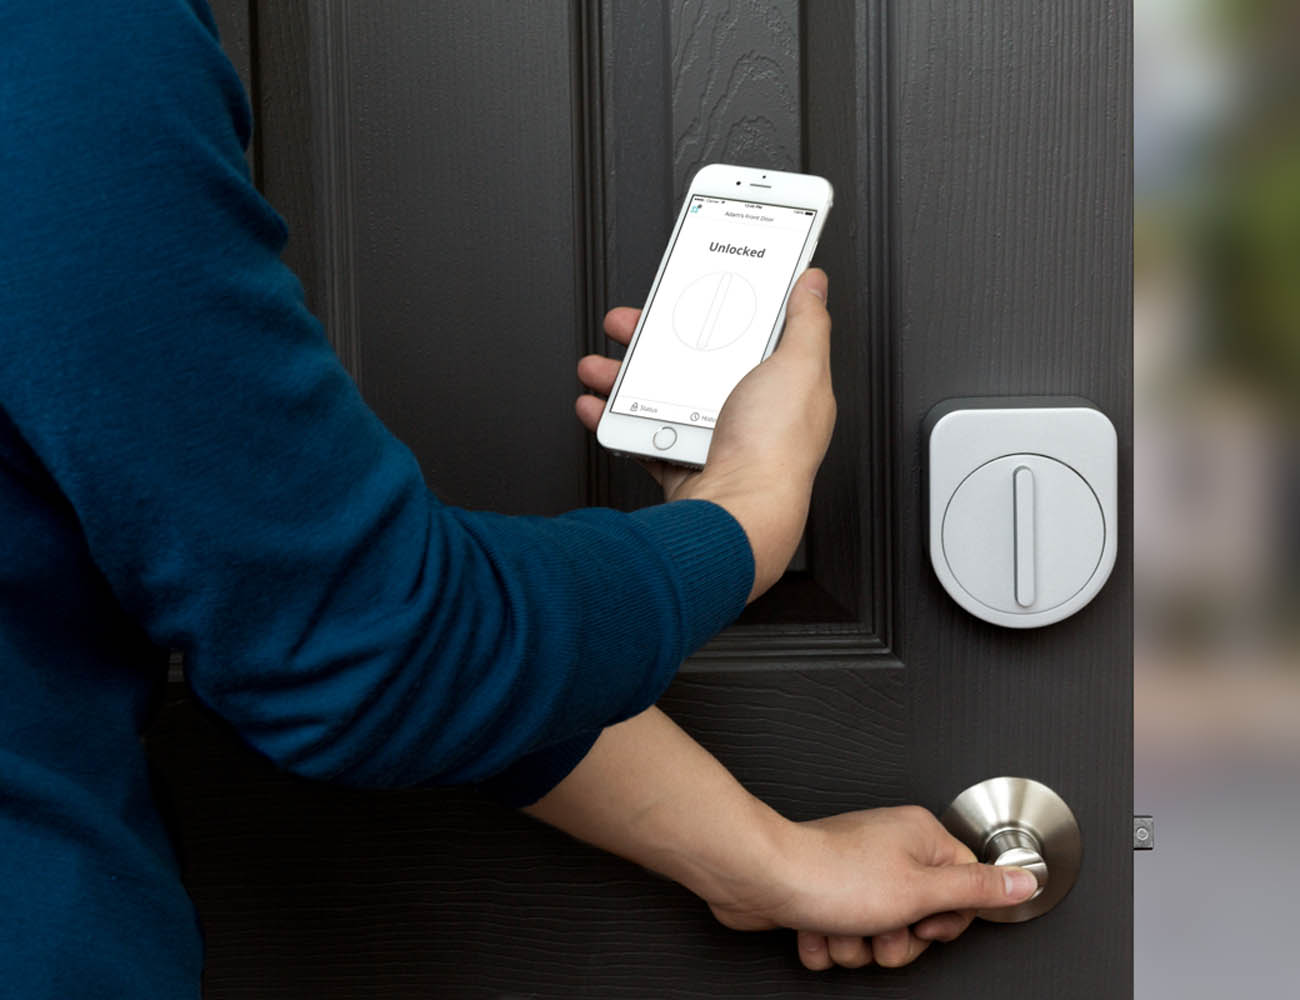 Sesame – Your key, reinvented